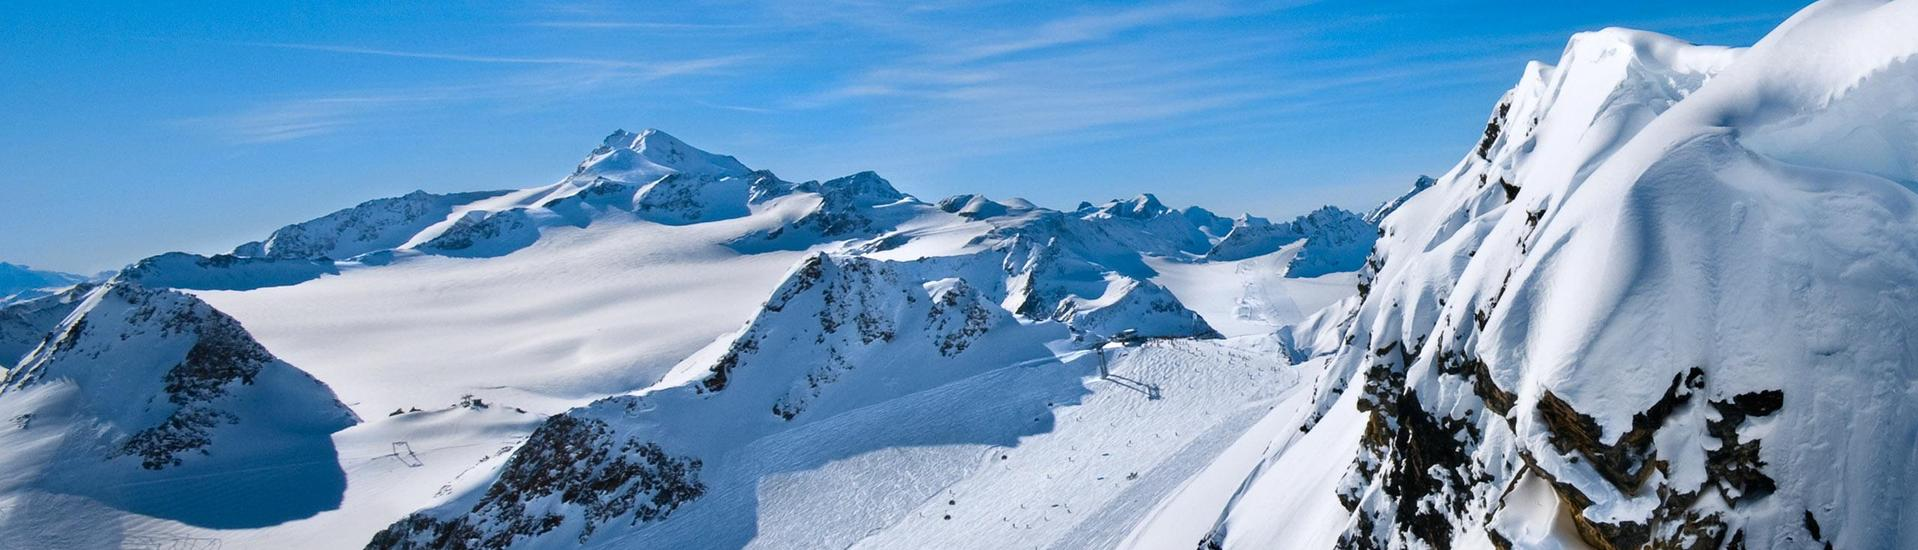 A view of a snowy mountain top in the ski resort of Les Houches, where ski schools gather to start their ski lessons.